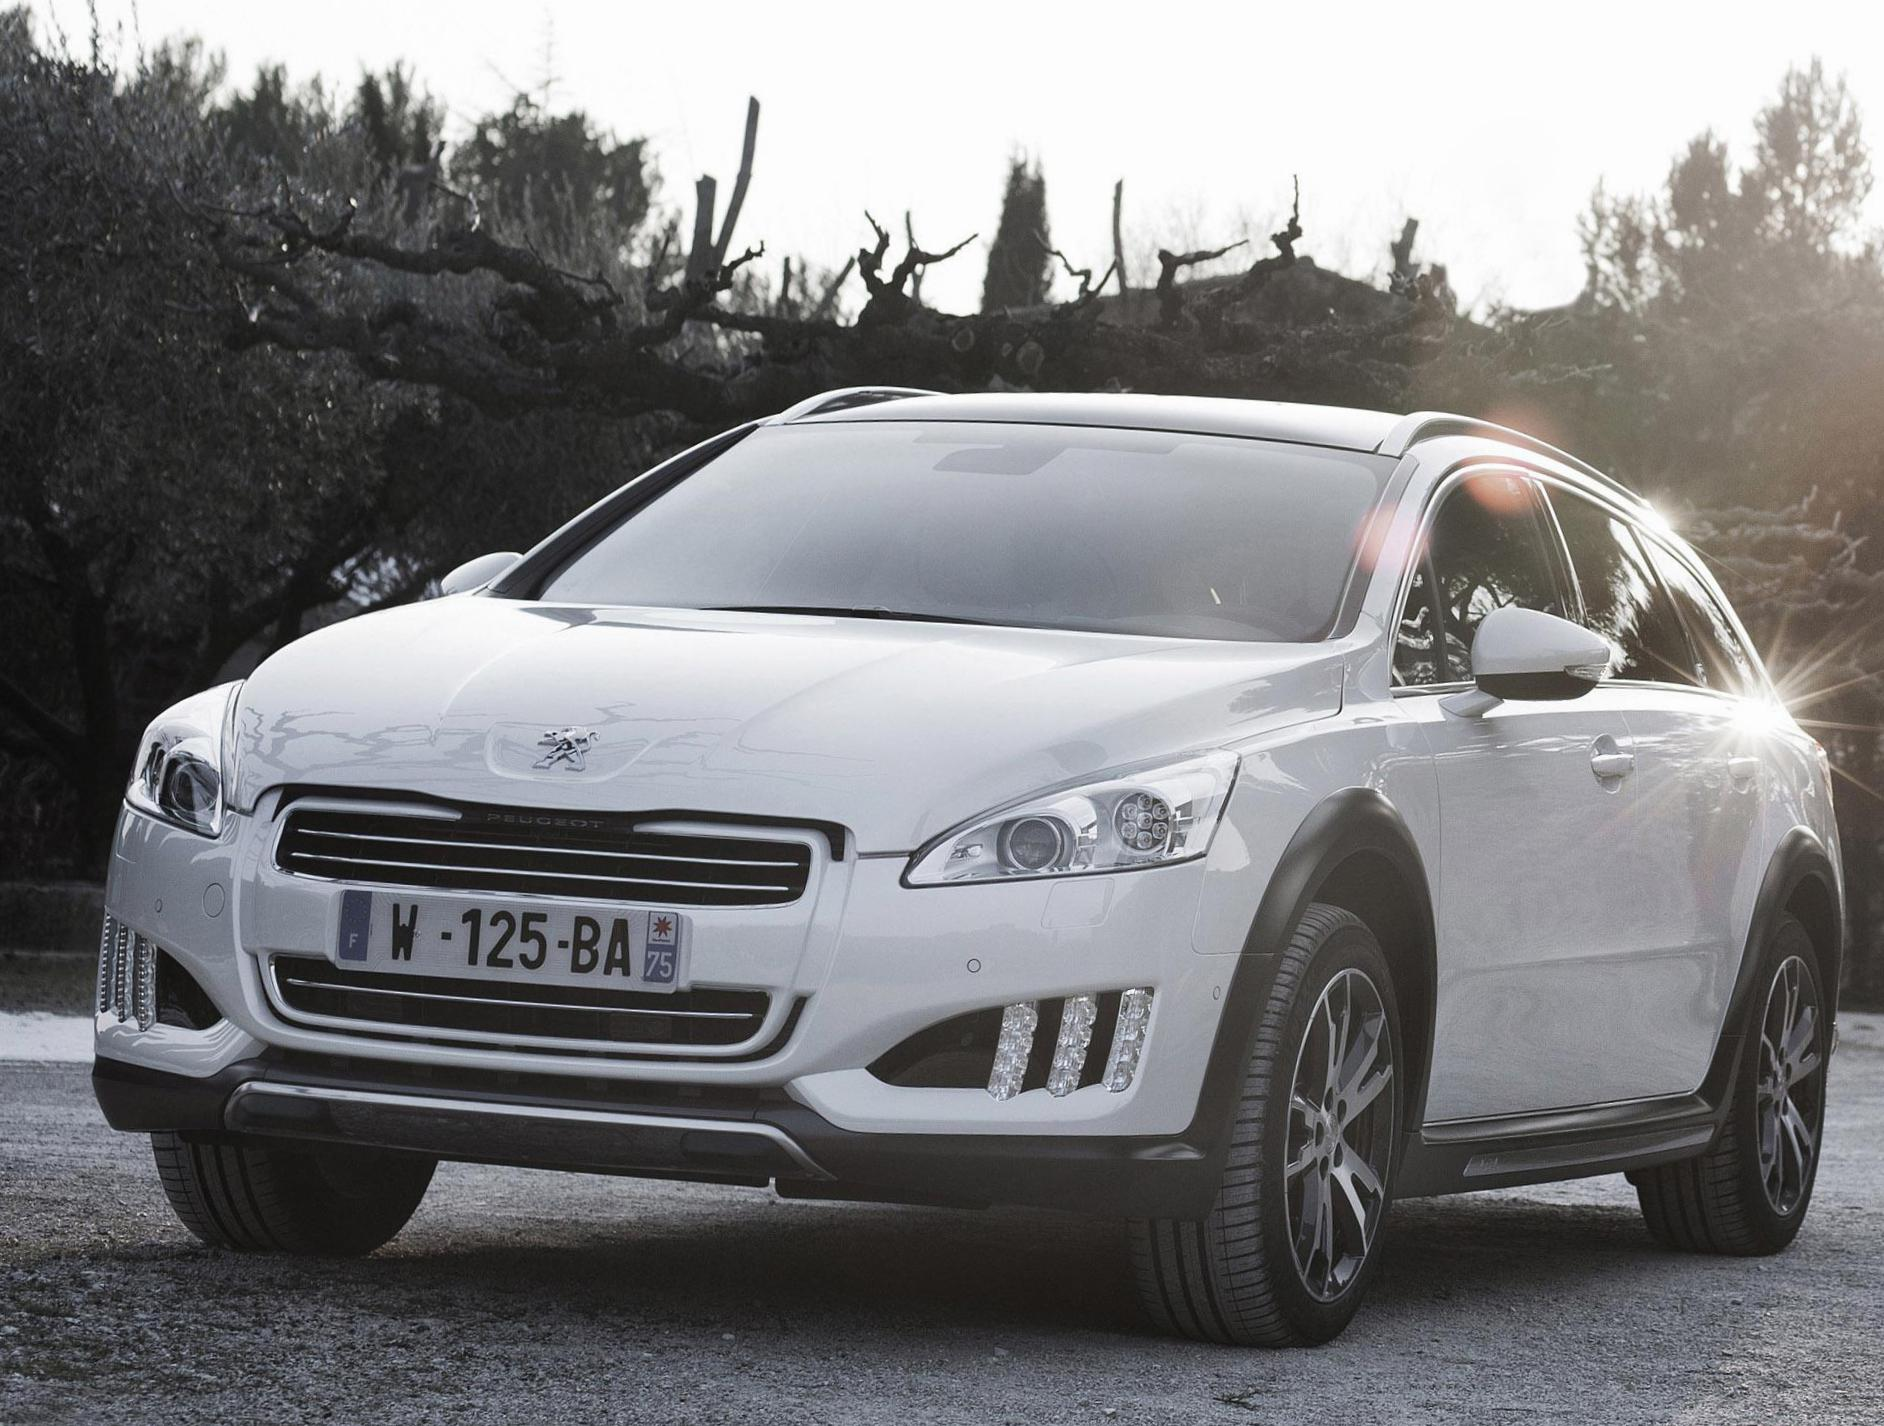 Peugeot 508 Rxh Photos And Specs Photo Peugeot 508 Rxh Models And